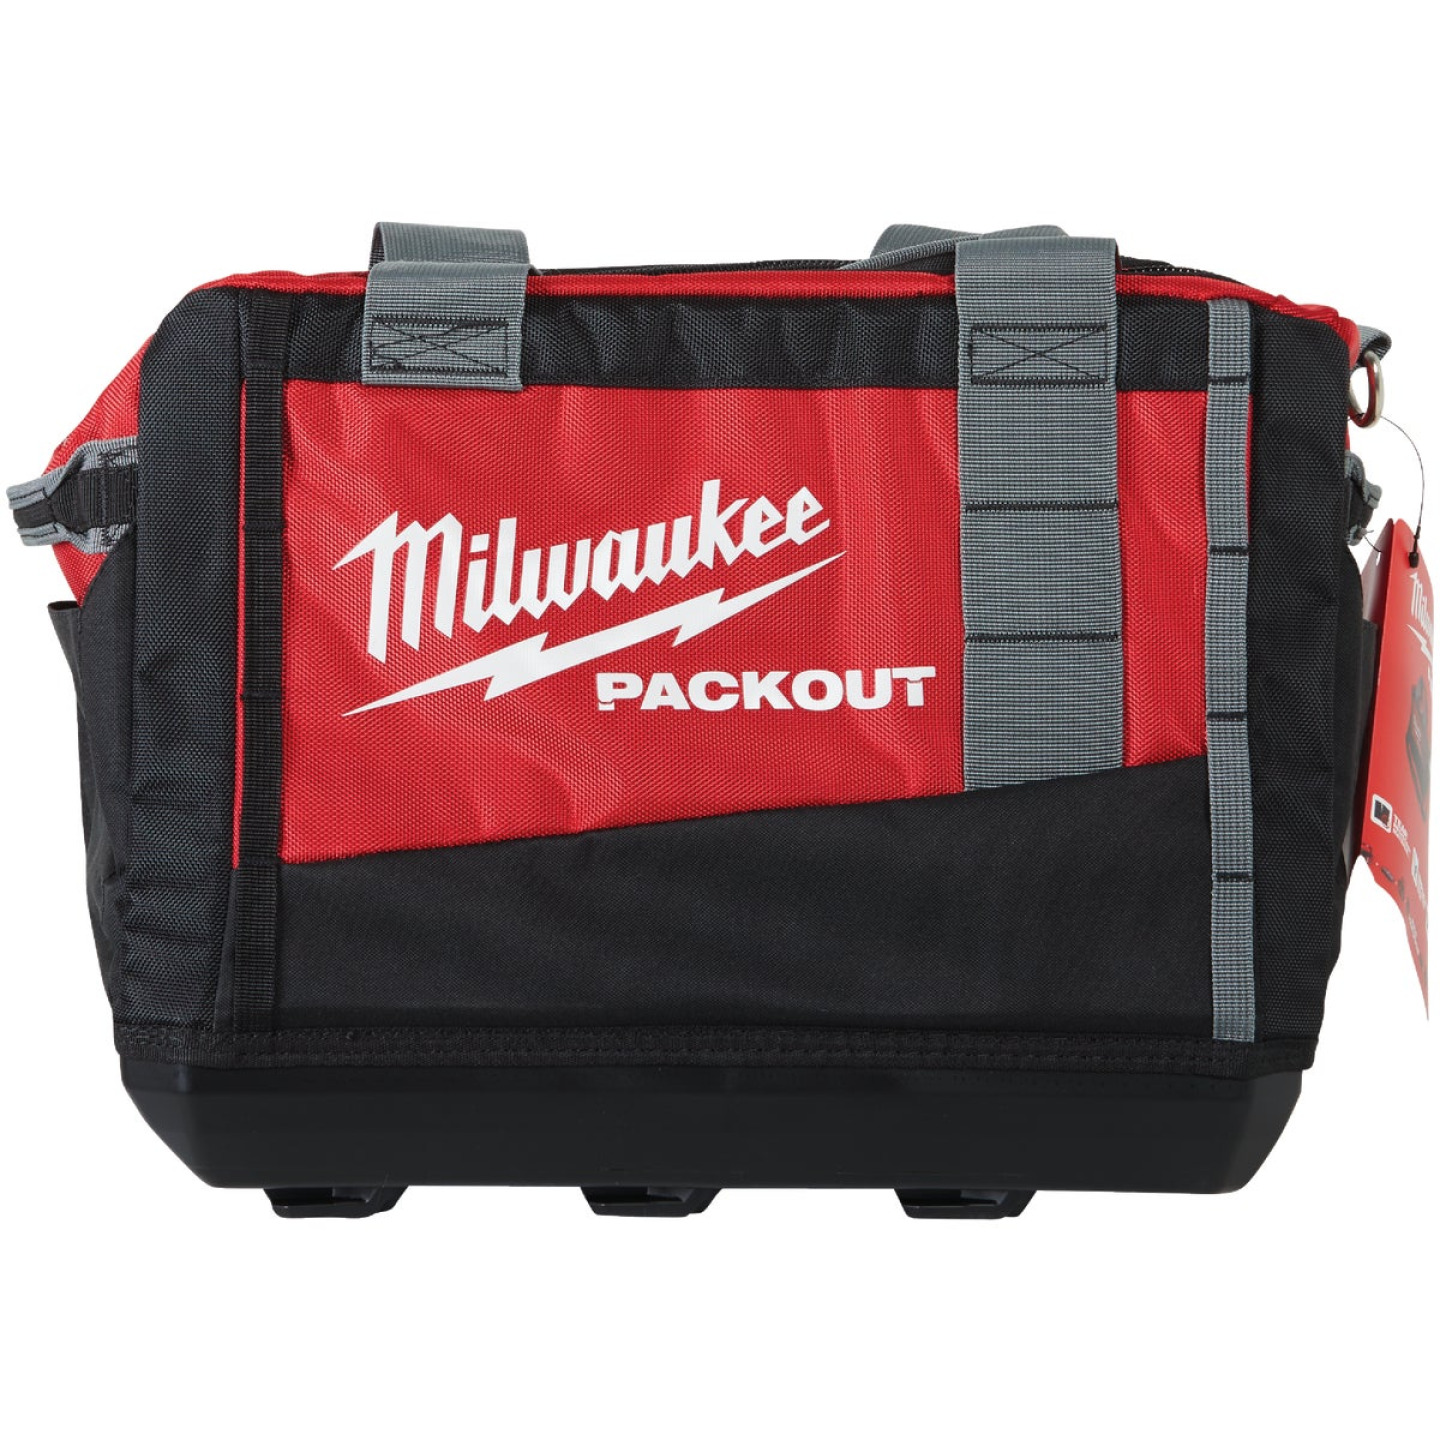 Milwaukee PACKOUT 3-Pocket 15 In. Tool Bag Image 4